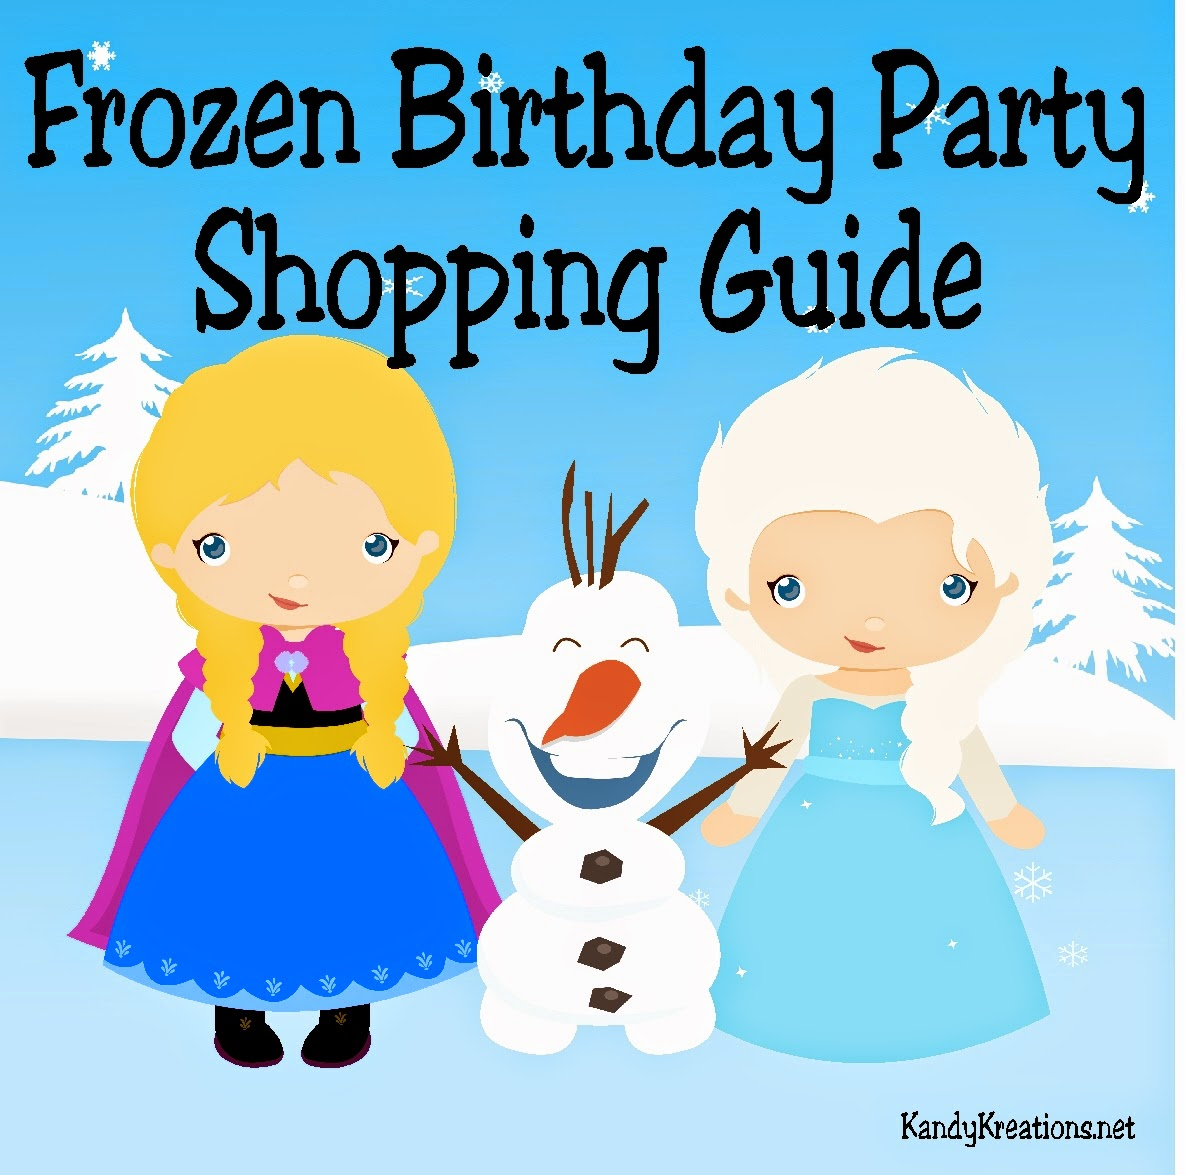 Throwing a Frozen Birthday party can be fun and overwhelming.  Need some help finding the great products out there to make your Elsa and Olaf the Snowman thrilled to come visit? Check out this great shopping guide with the most unique, fun, and perfect items to make you the best party planner ever!